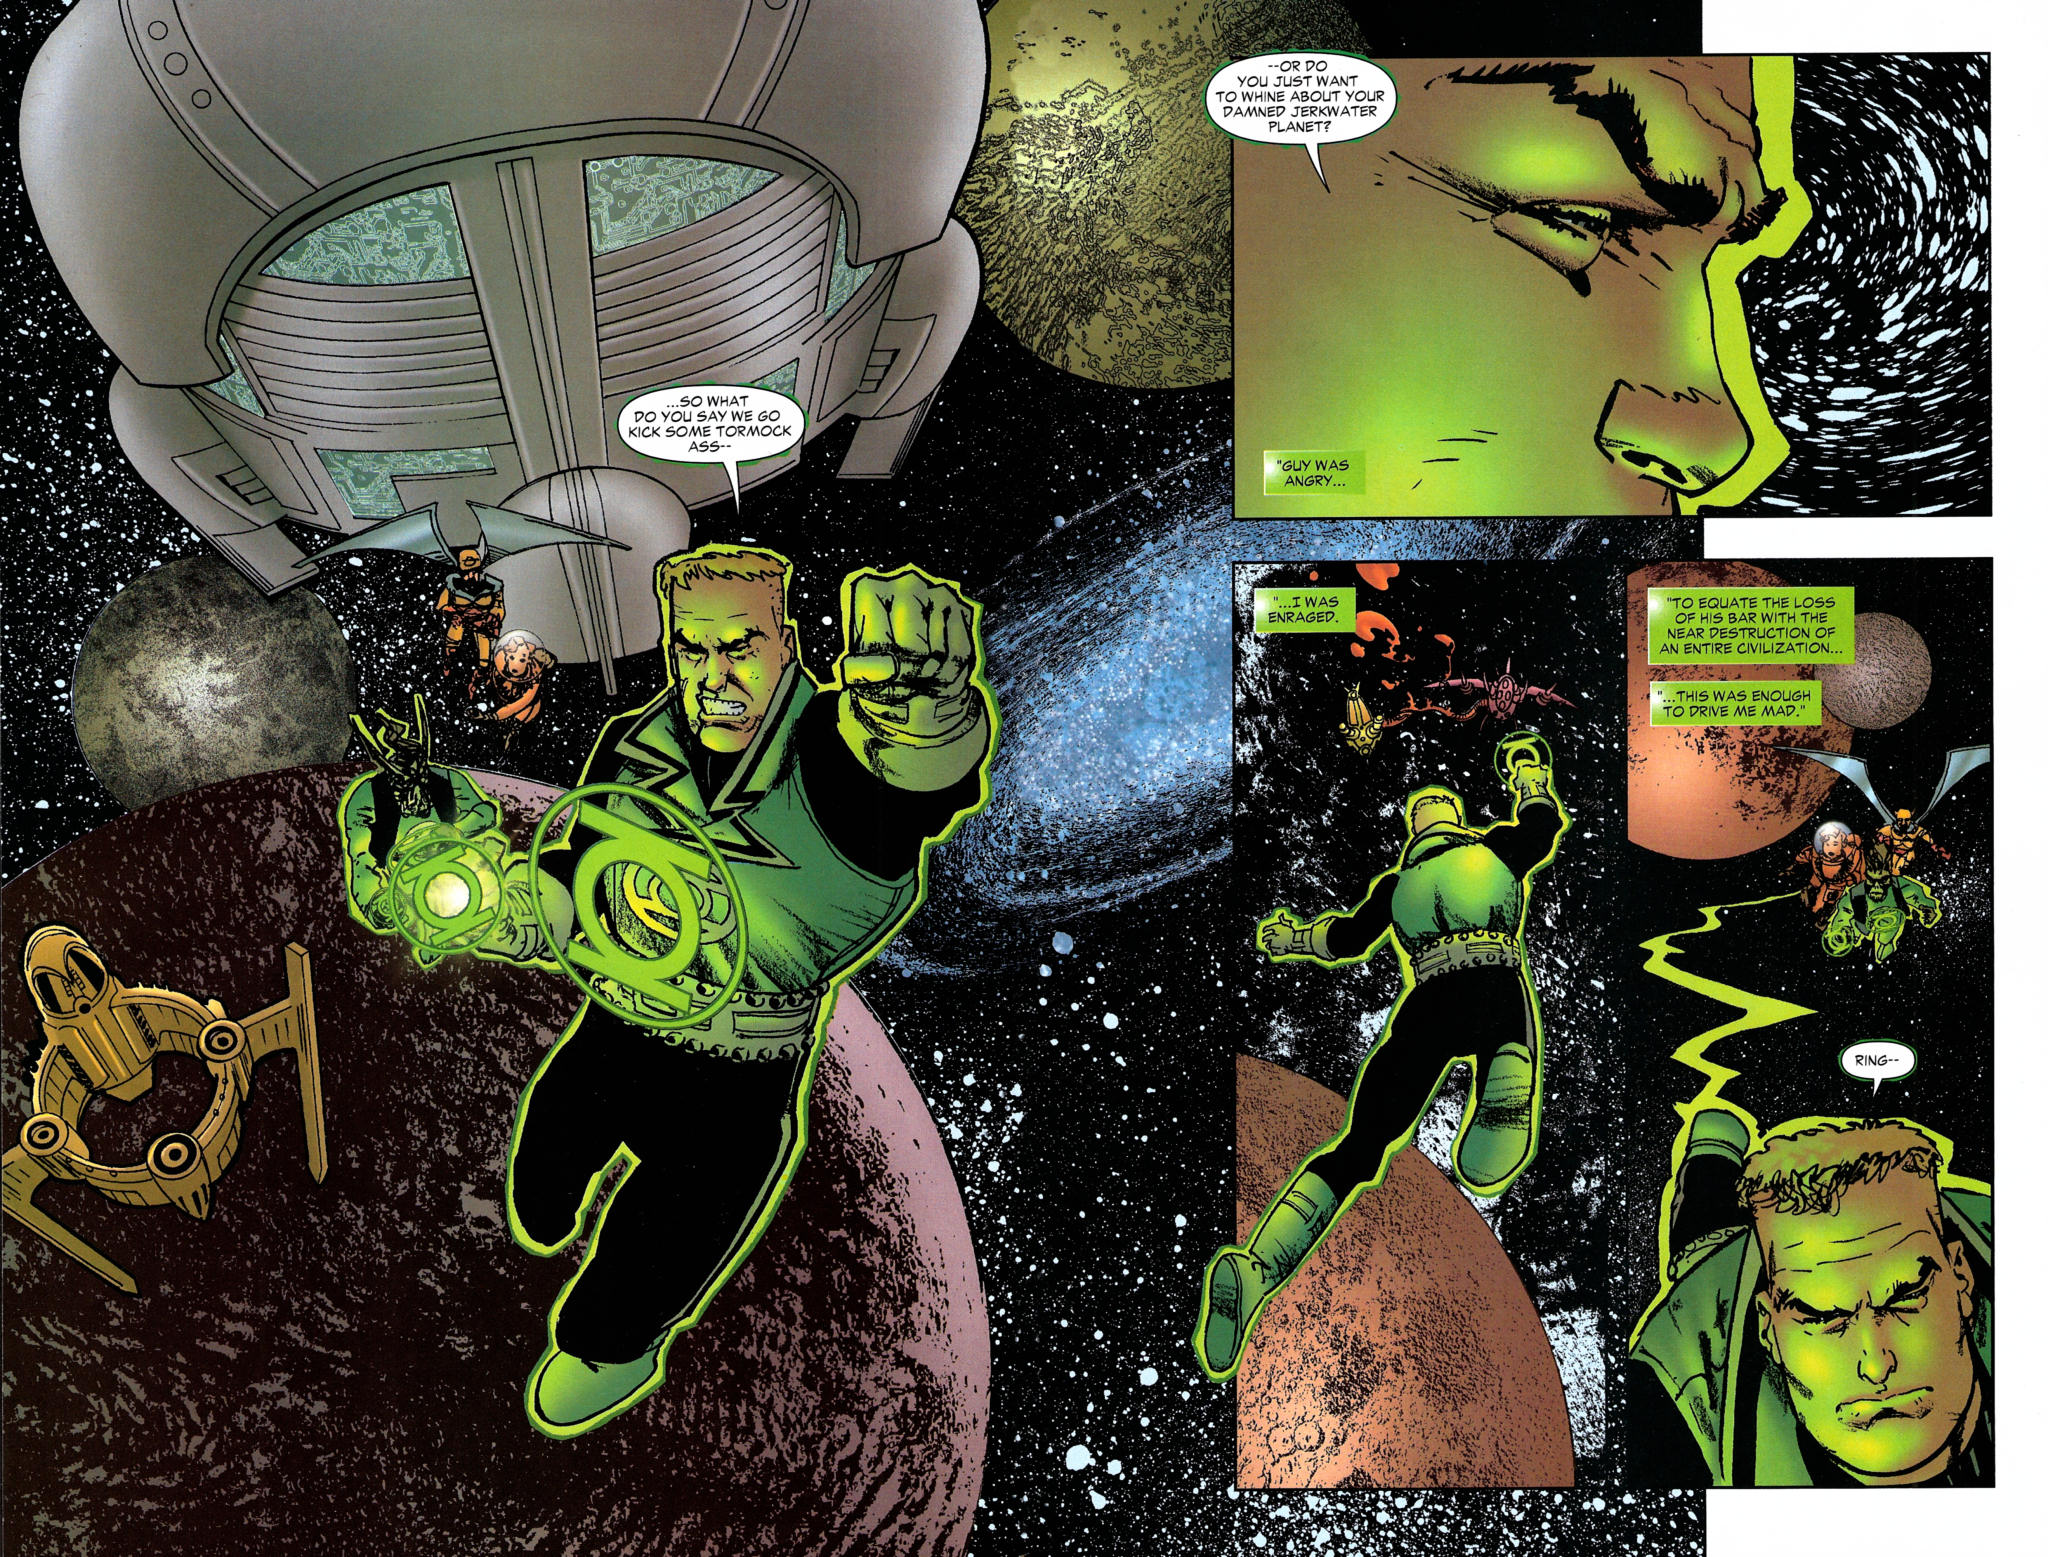 Read online Guy Gardner: Collateral Damage comic -  Issue #2 - 24